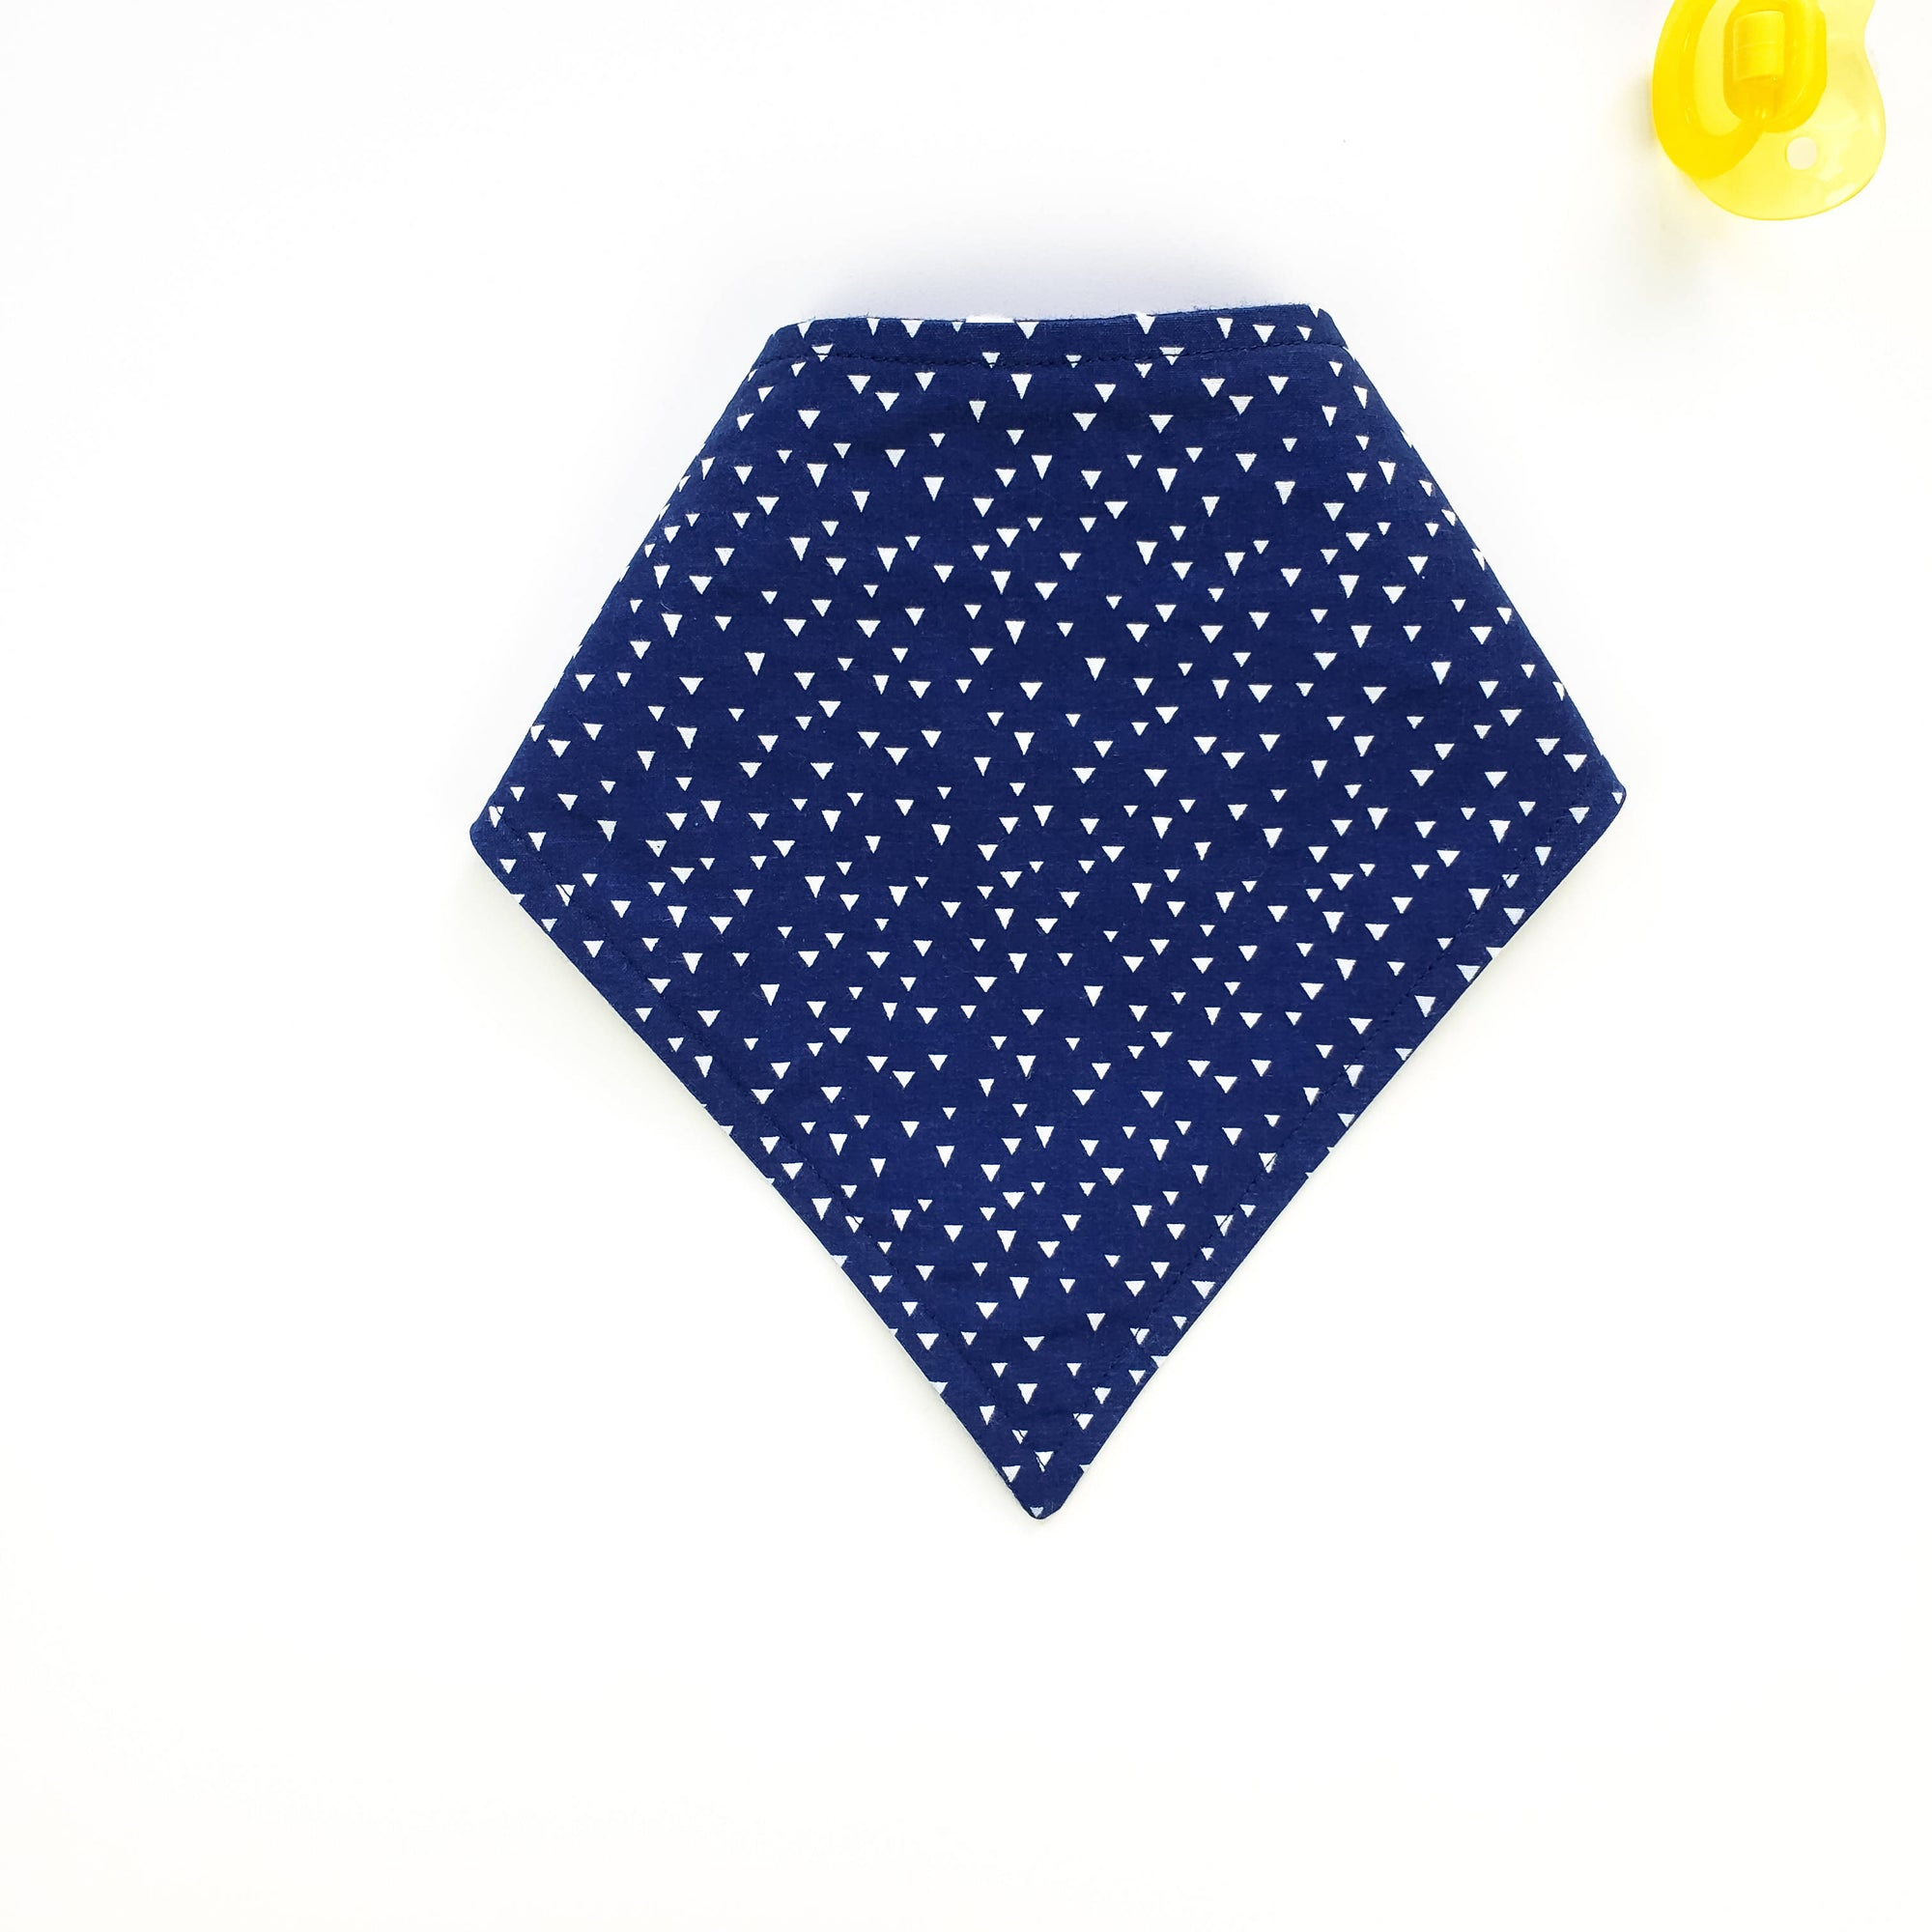 Bandana Bib - White Triangles on Navy